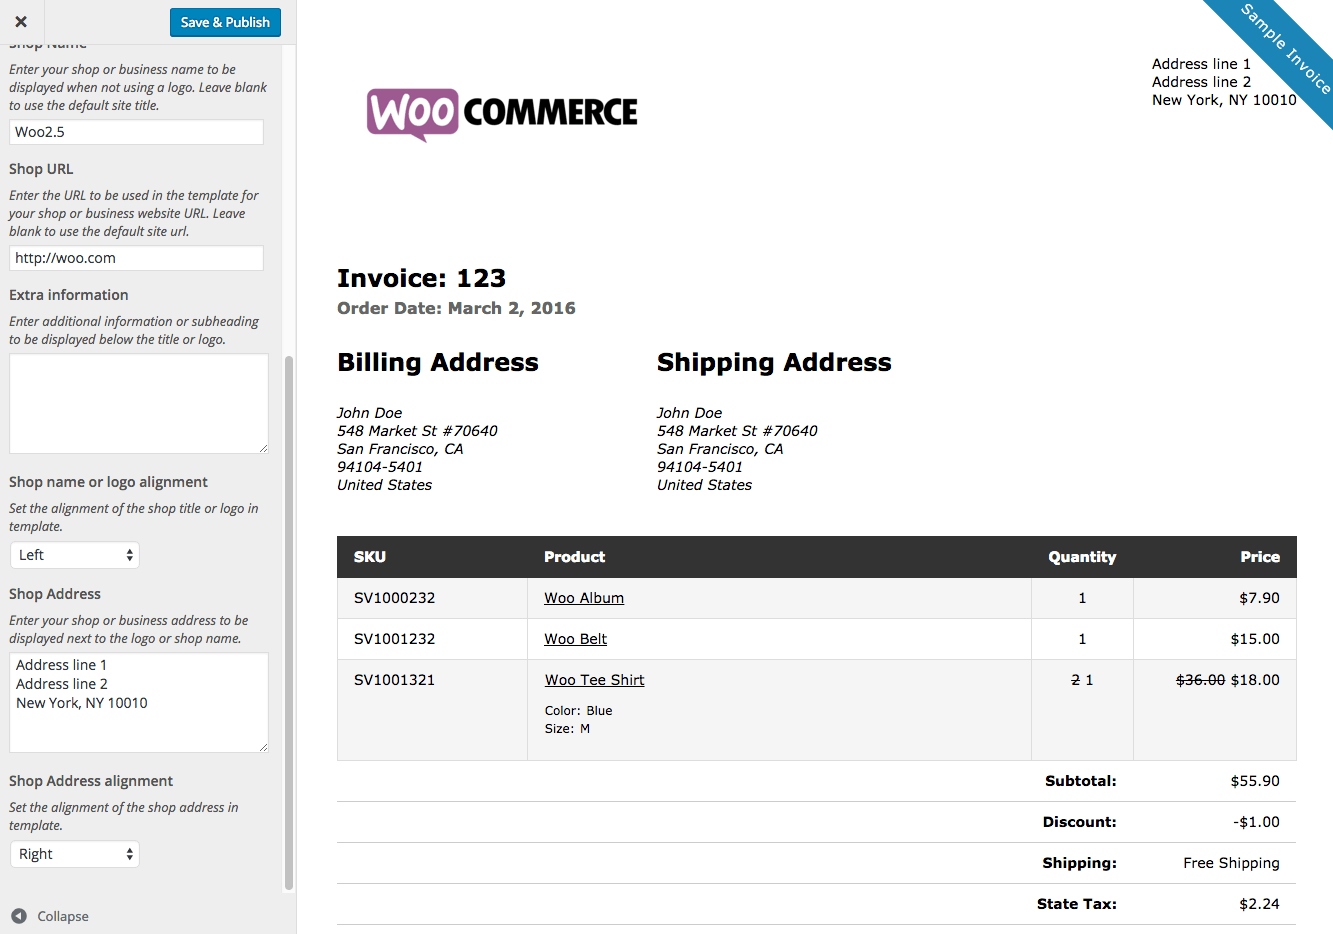 Carsforlessus  Ravishing Woocommerce Print Invoices Amp Packing Lists  Woocommerce Docs With Exciting Woocommerce Print Invoices  Packing Lists Customizer With Astonishing Tooth Fairy Receipt Also Smart Receipt In Addition Budget Receipt And Bill Receipt As Well As How To Request A Read Receipt In Gmail Additionally Walmart Car Battery Warranty No Receipt From Docswoocommercecom With Carsforlessus  Exciting Woocommerce Print Invoices Amp Packing Lists  Woocommerce Docs With Astonishing Woocommerce Print Invoices  Packing Lists Customizer And Ravishing Tooth Fairy Receipt Also Smart Receipt In Addition Budget Receipt From Docswoocommercecom